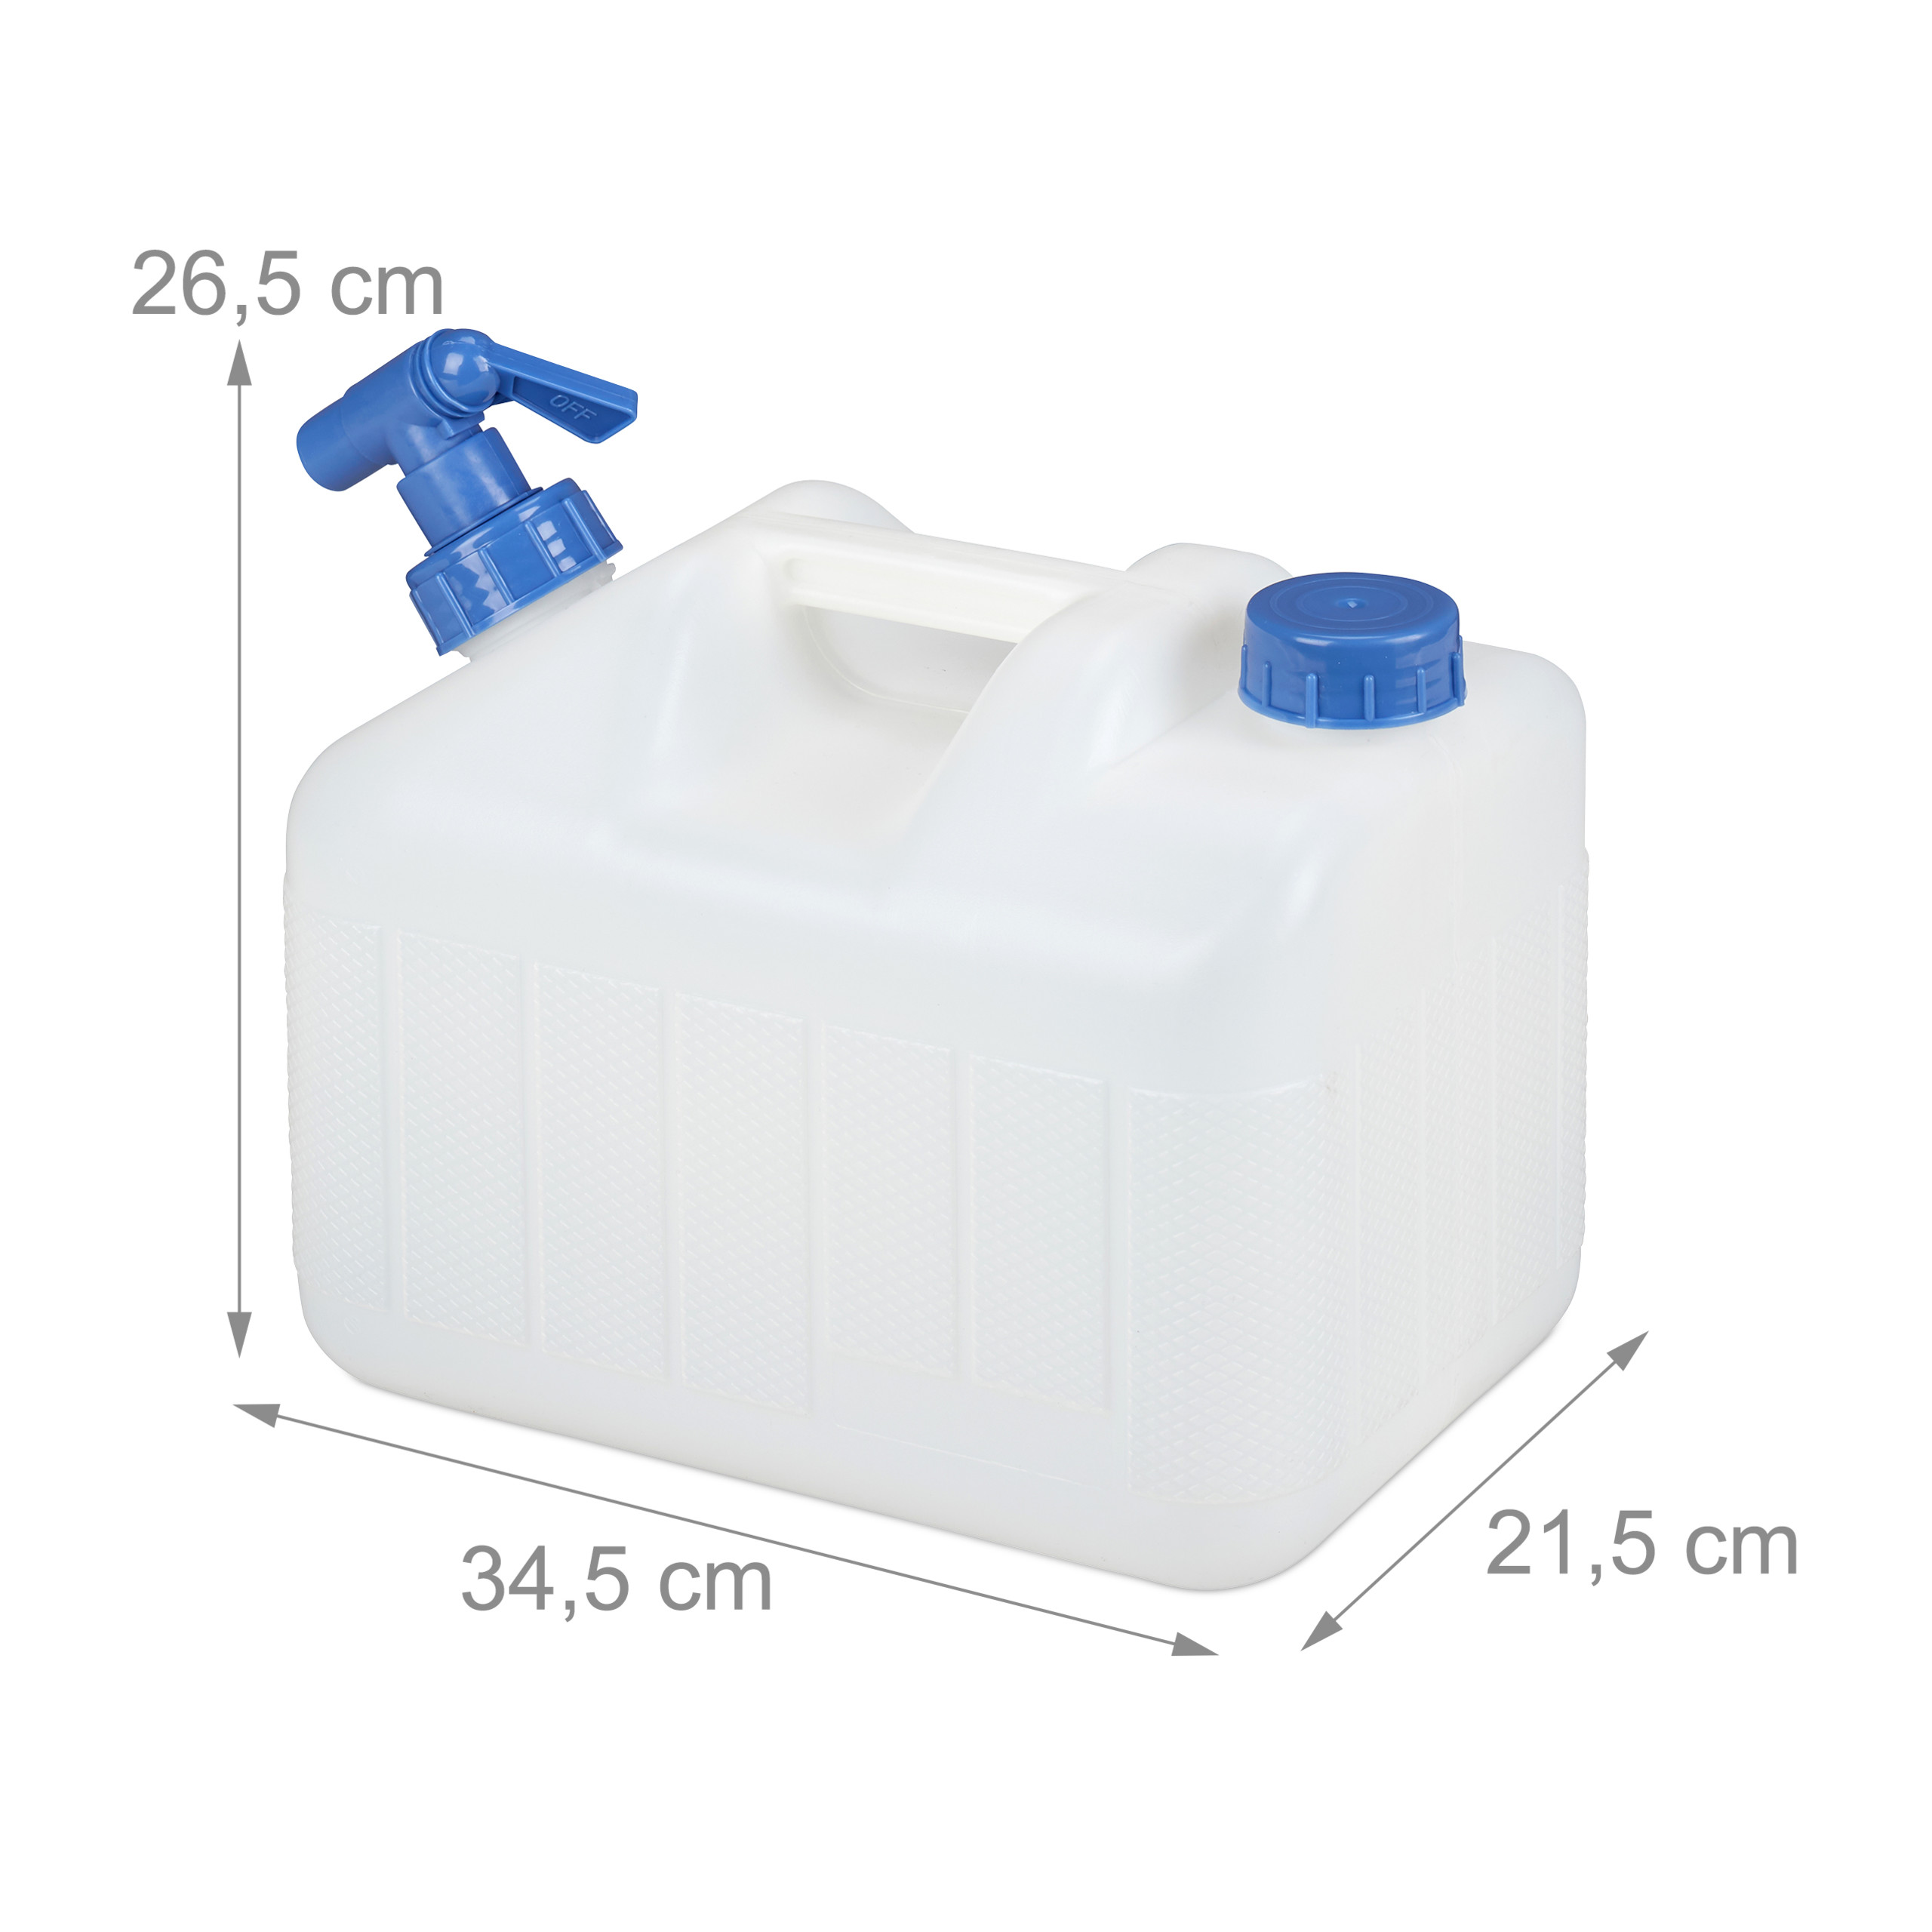 thumbnail 11 - Water Canister, Spigot, Jerrycan, Water Jug, Plastic Container